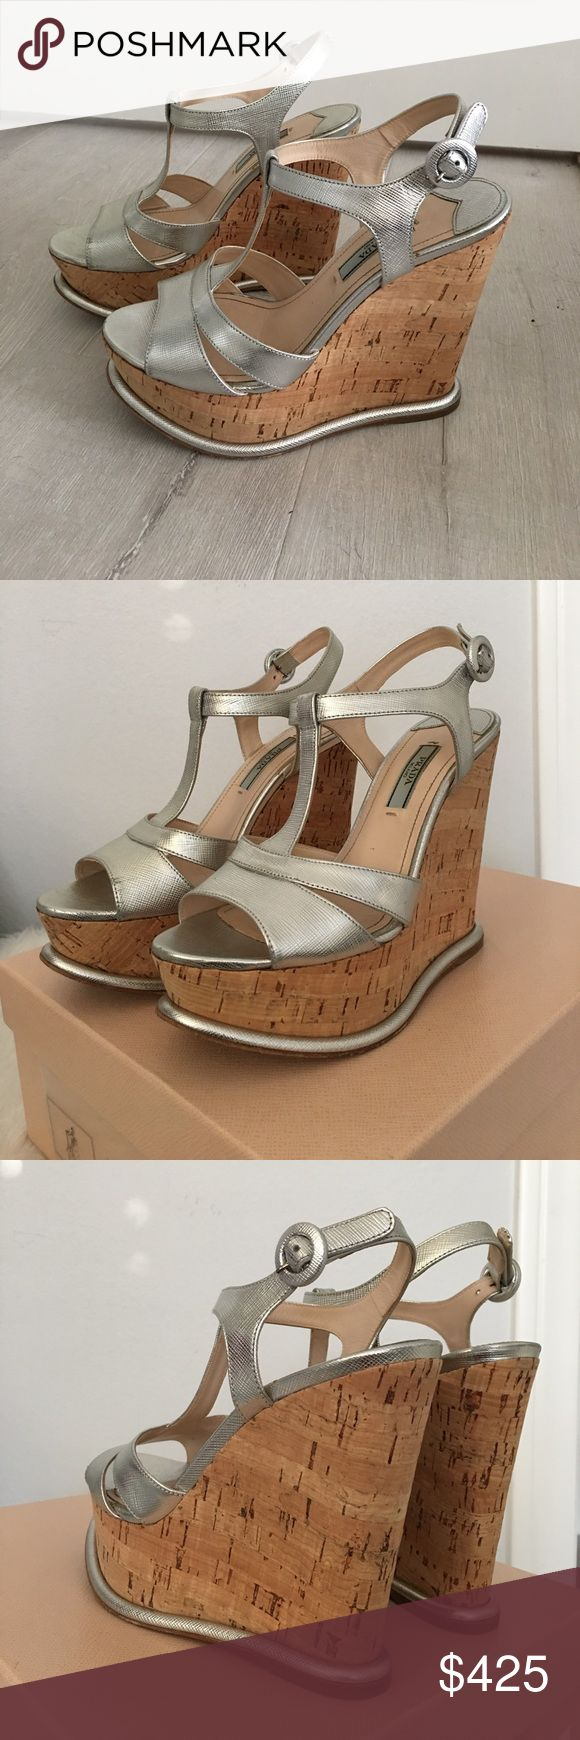 Prada wedge sandals Color is Argento (silver). Wedge is cork. These are super comfortable, just too high for me. 5.25 I'm back with a 1.75 front lift). I purchased at Nieman Marcus $850 comes with box and shoes shoe bag. 36.5 Prada Shoes Wedges